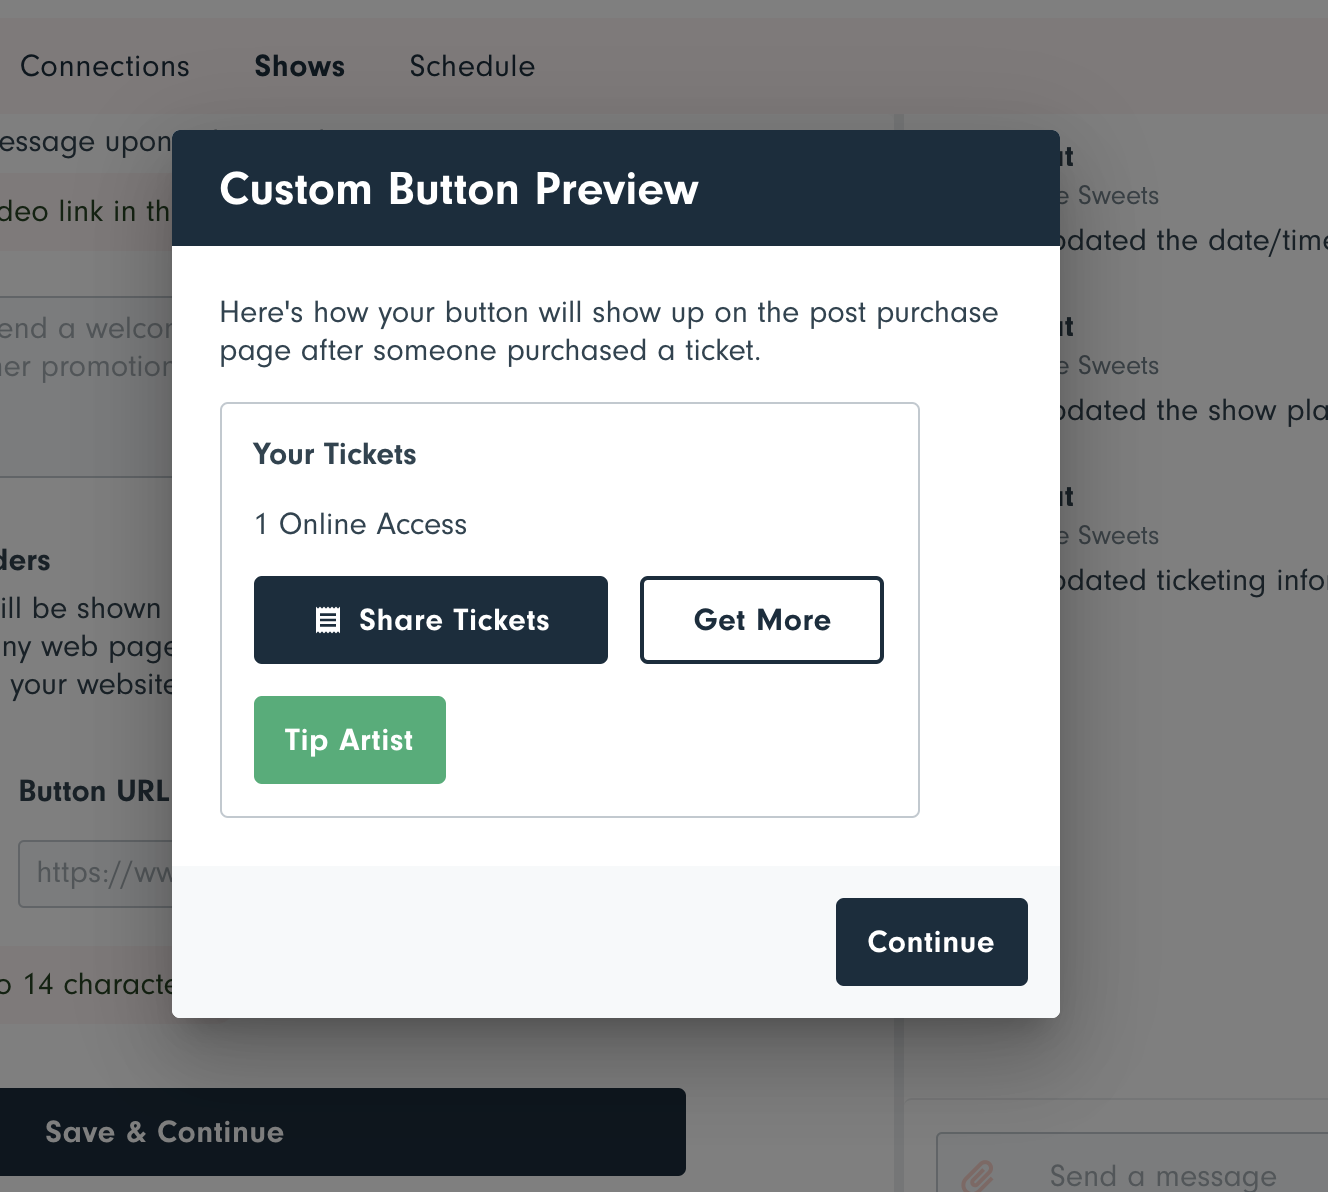 You can preview your button during show planning.